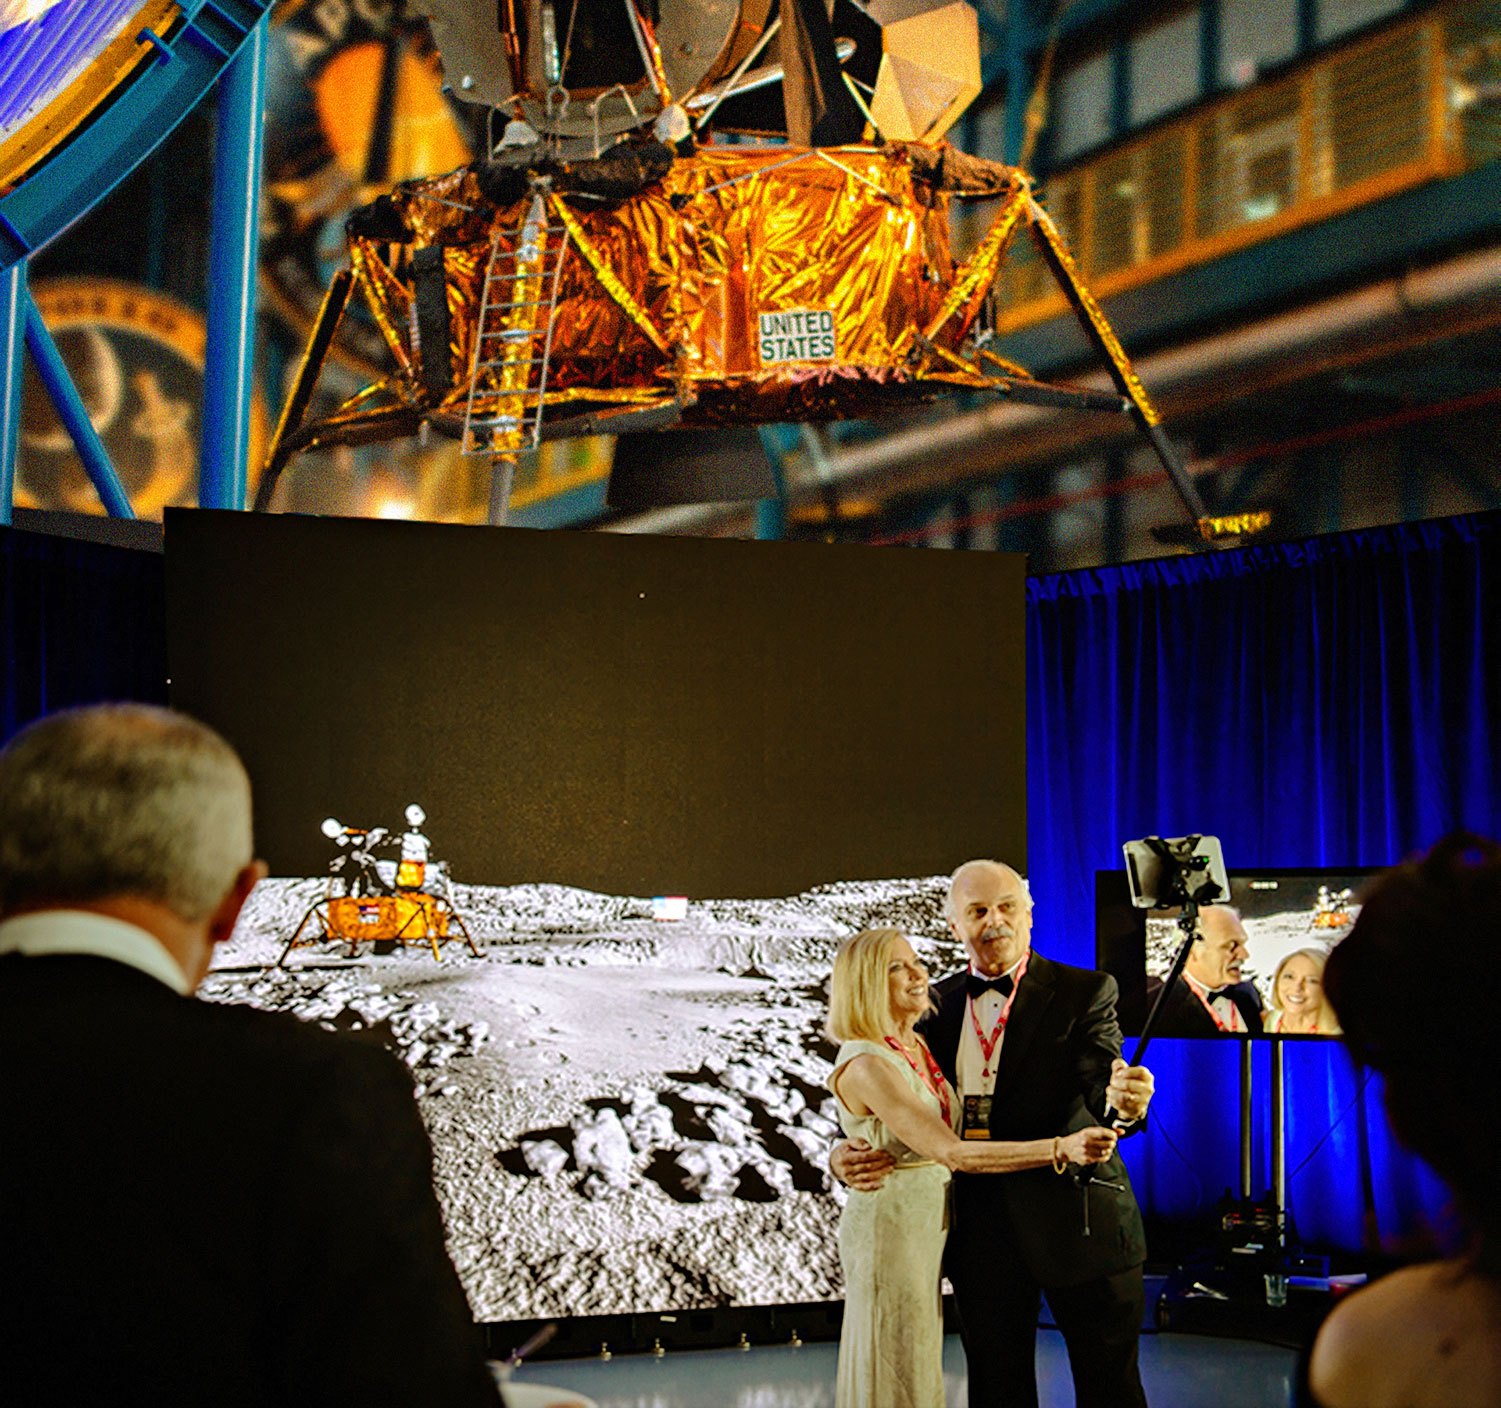 At the Apollo Celebration Gala, SaturnV Complex, Kennedy Space Center, Florida. Courtesy of The People's Moon.